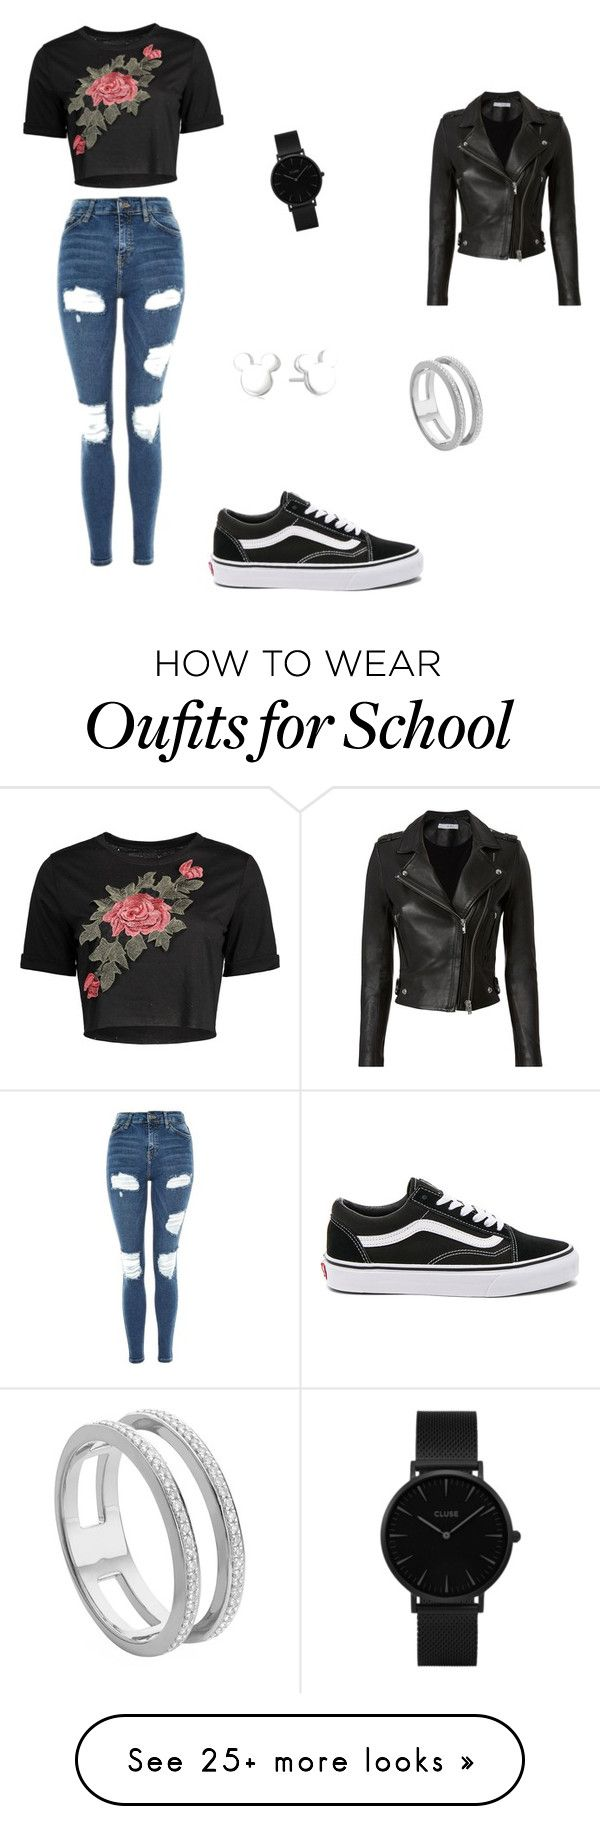 """School outfit!"" by melanie-santbergen on Polyvore featuring Topshop, IRO, Vans, CLUSE, Disney and Monica Vinader"